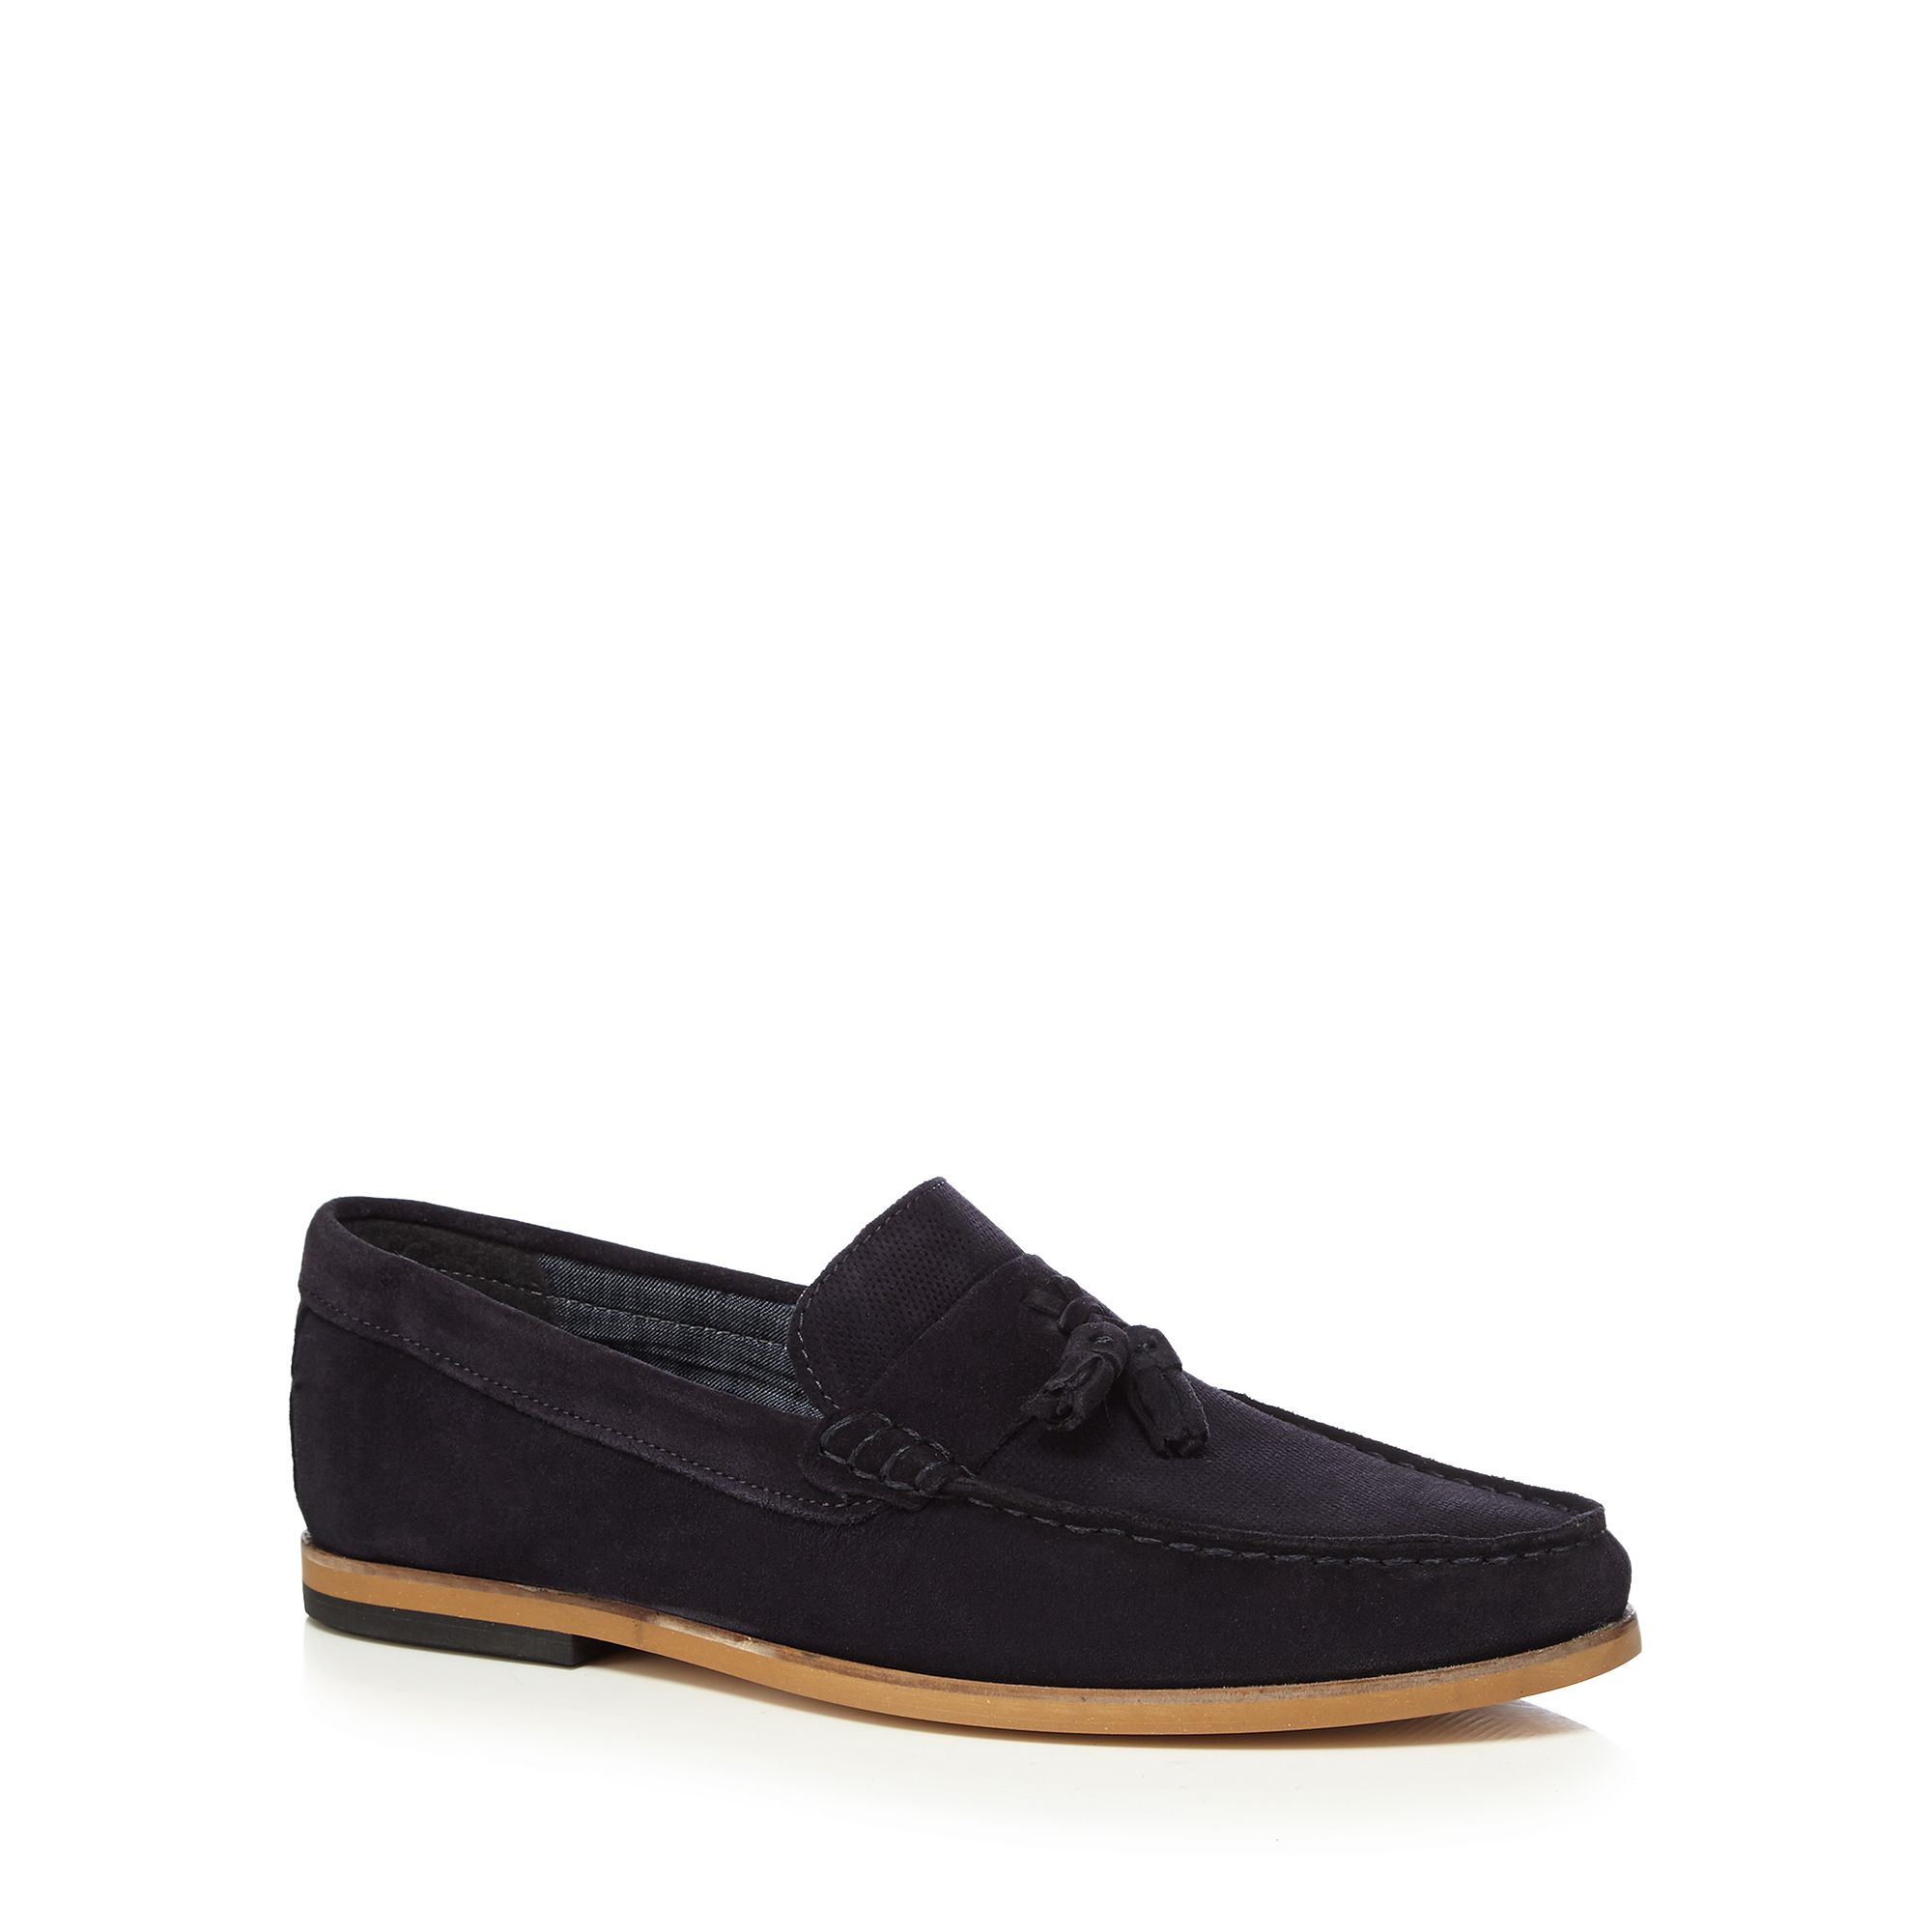 c00d5bba11dc3 Details about Red Herring Men Navy Suede 'Gravity' Tasselled Loafers